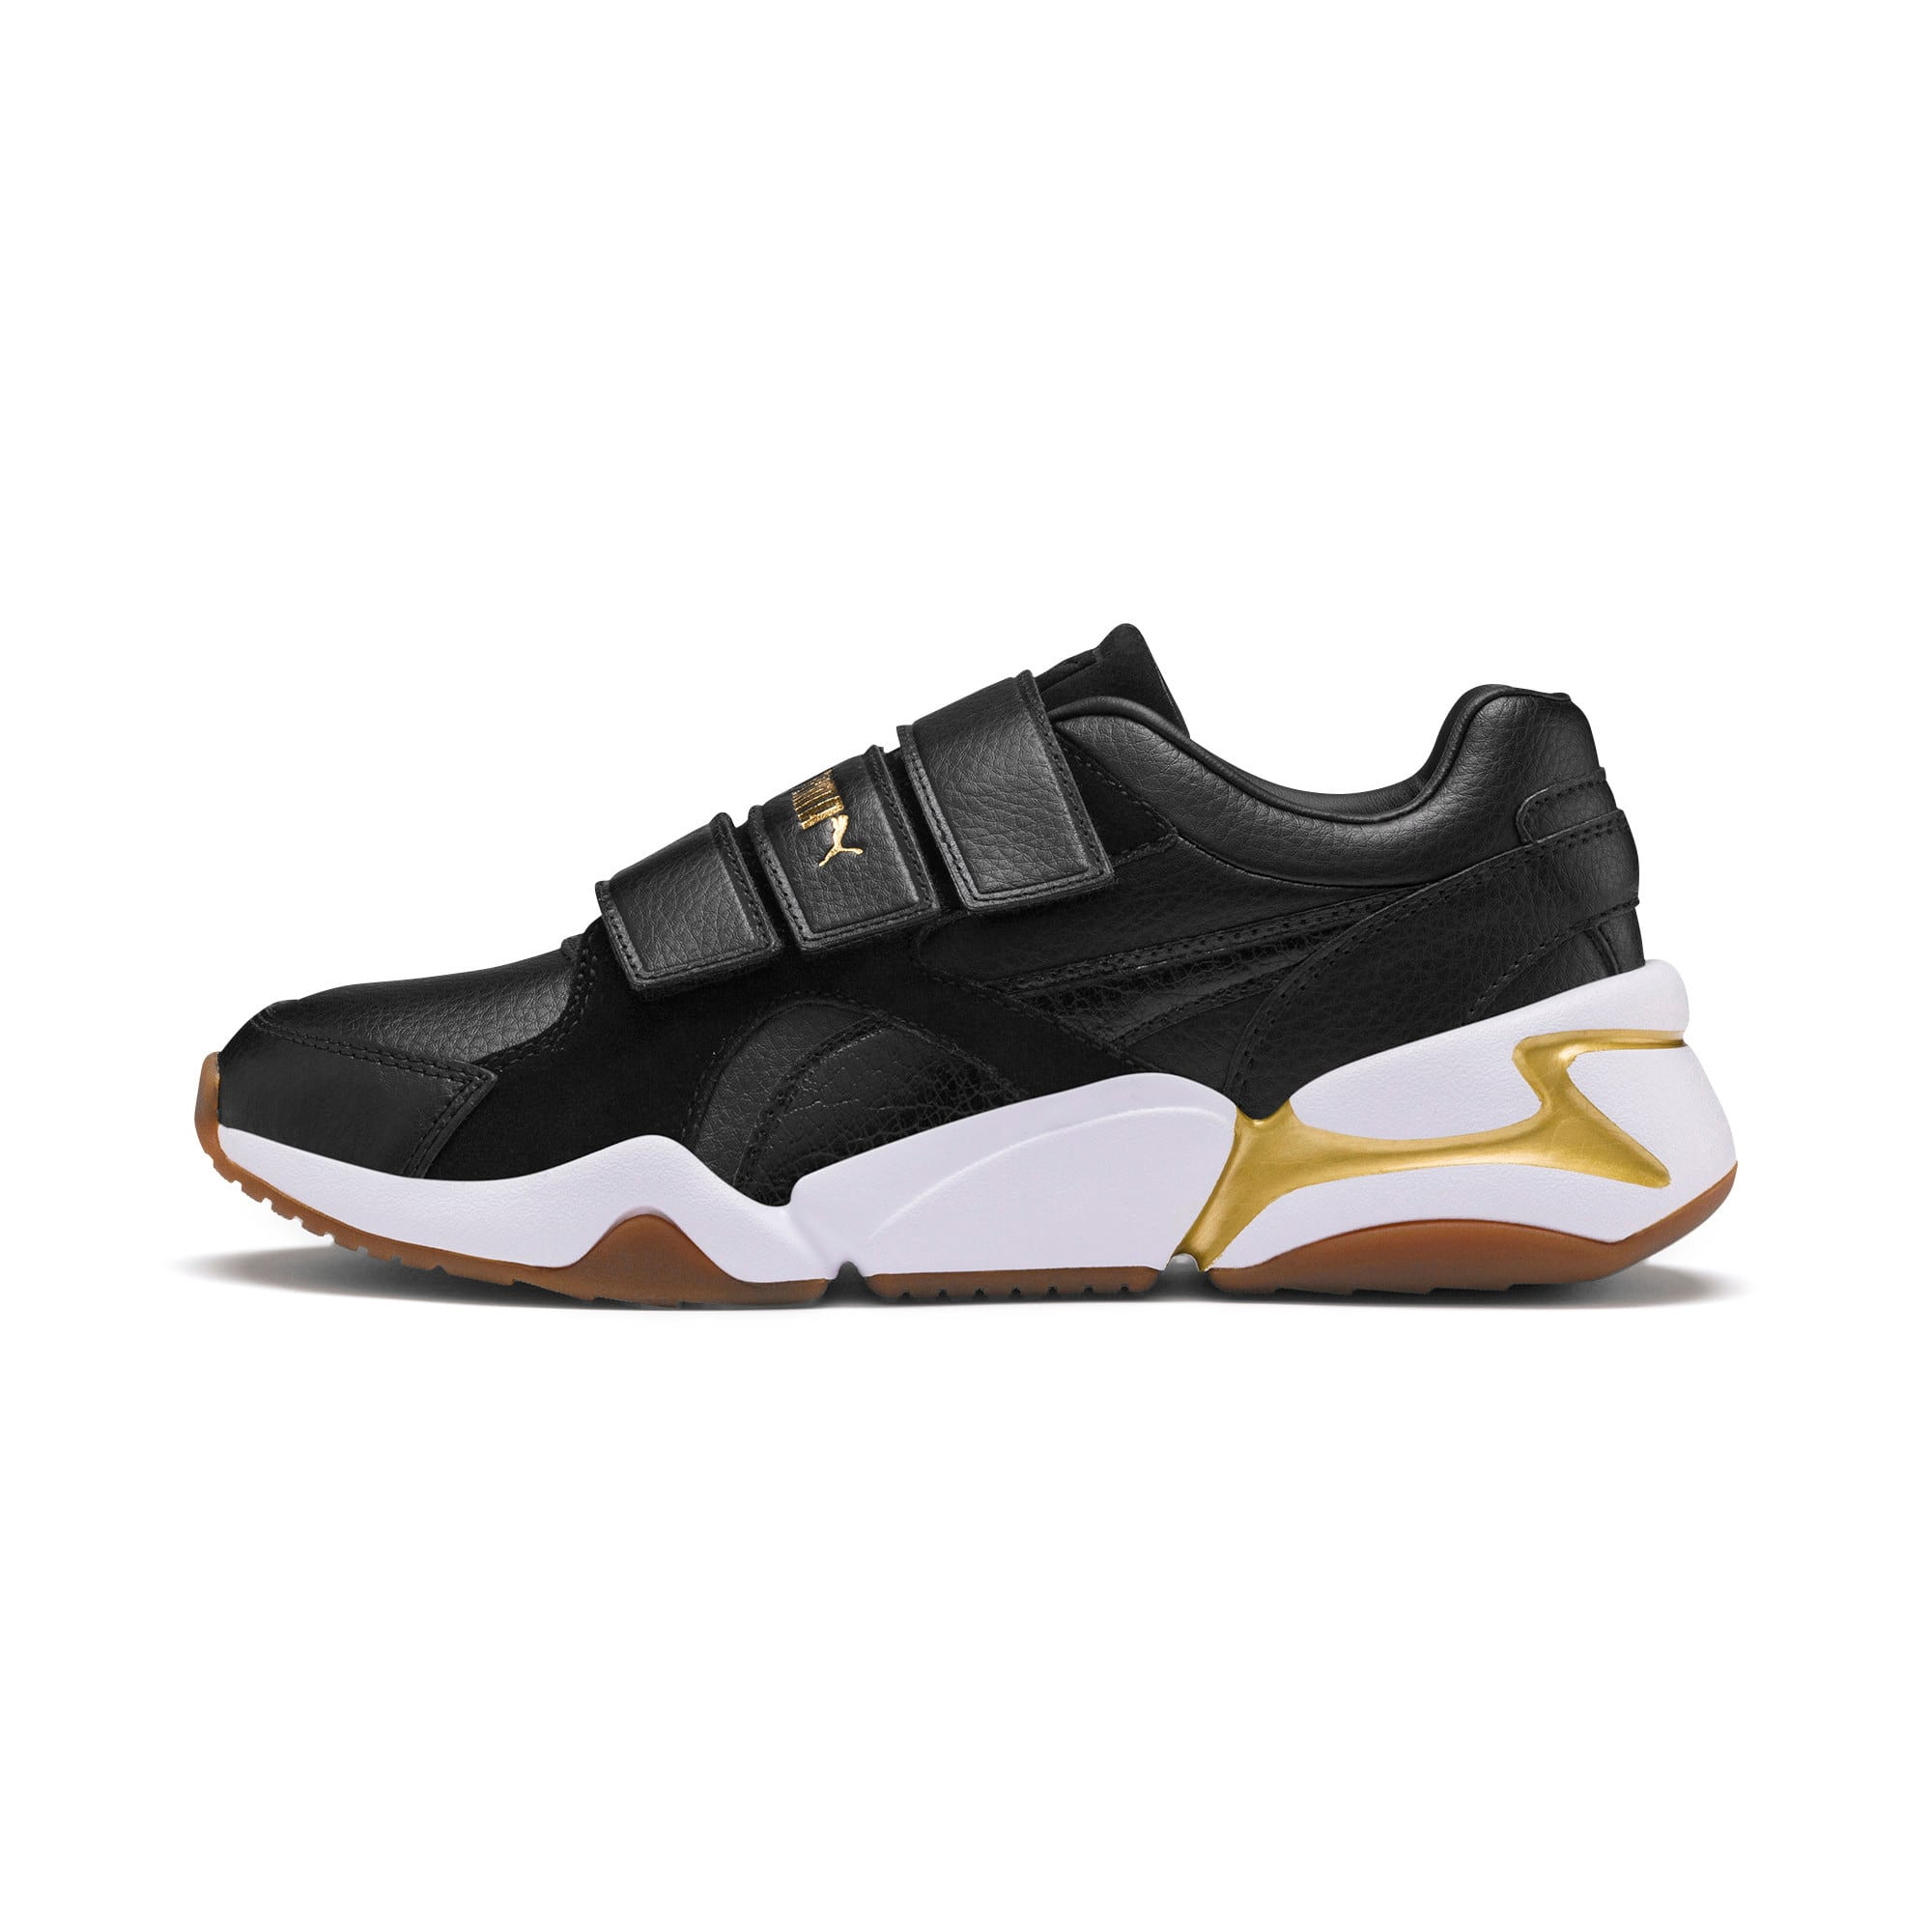 Thumbnail 1 of Nova V Leather Women's Trainers, Puma Black-Puma Team Gold, medium